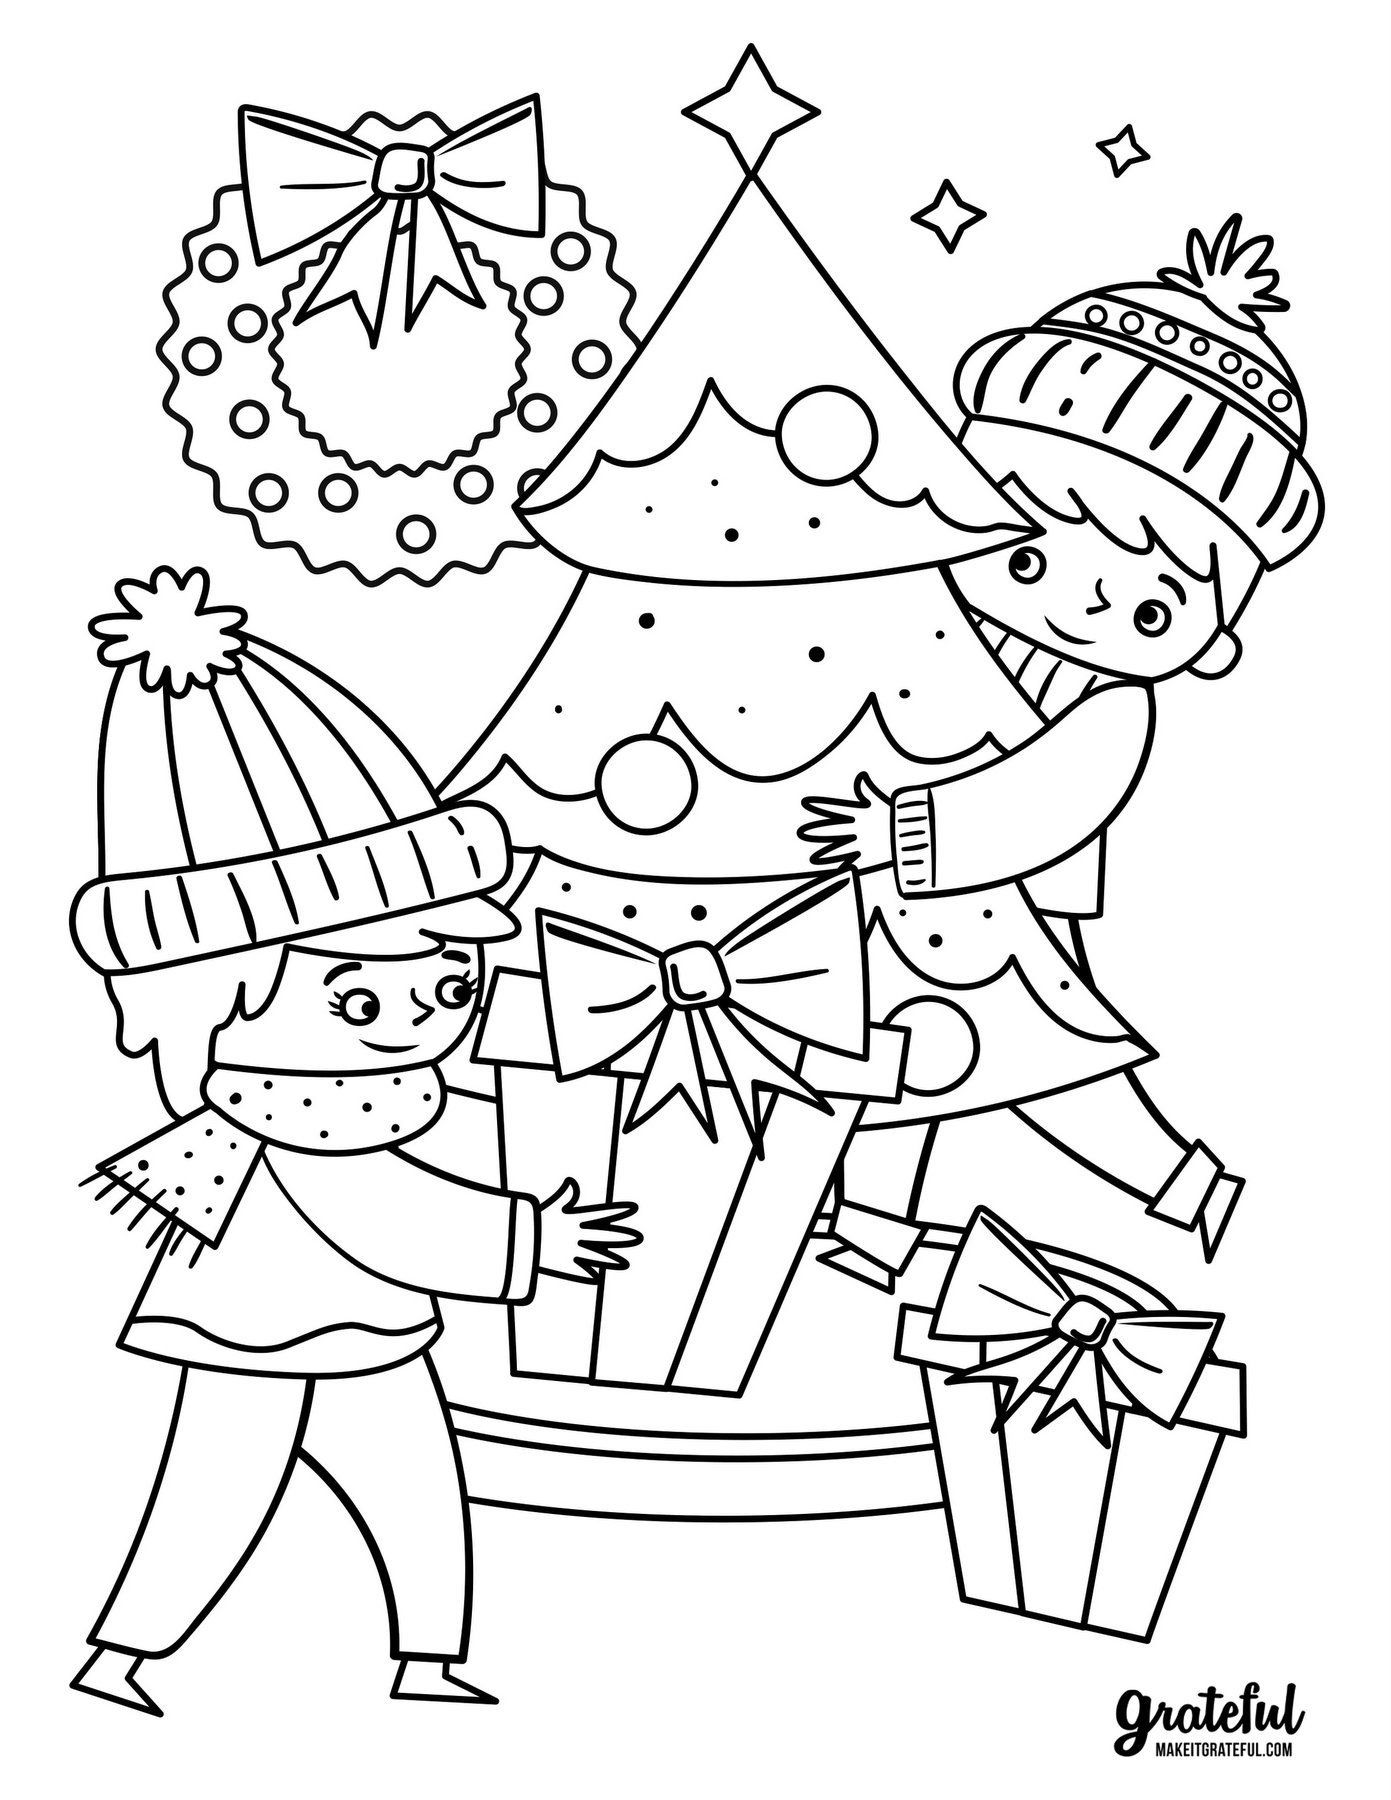 Christmas Coloring Pages for Kids Coloring Pages Coloring ...